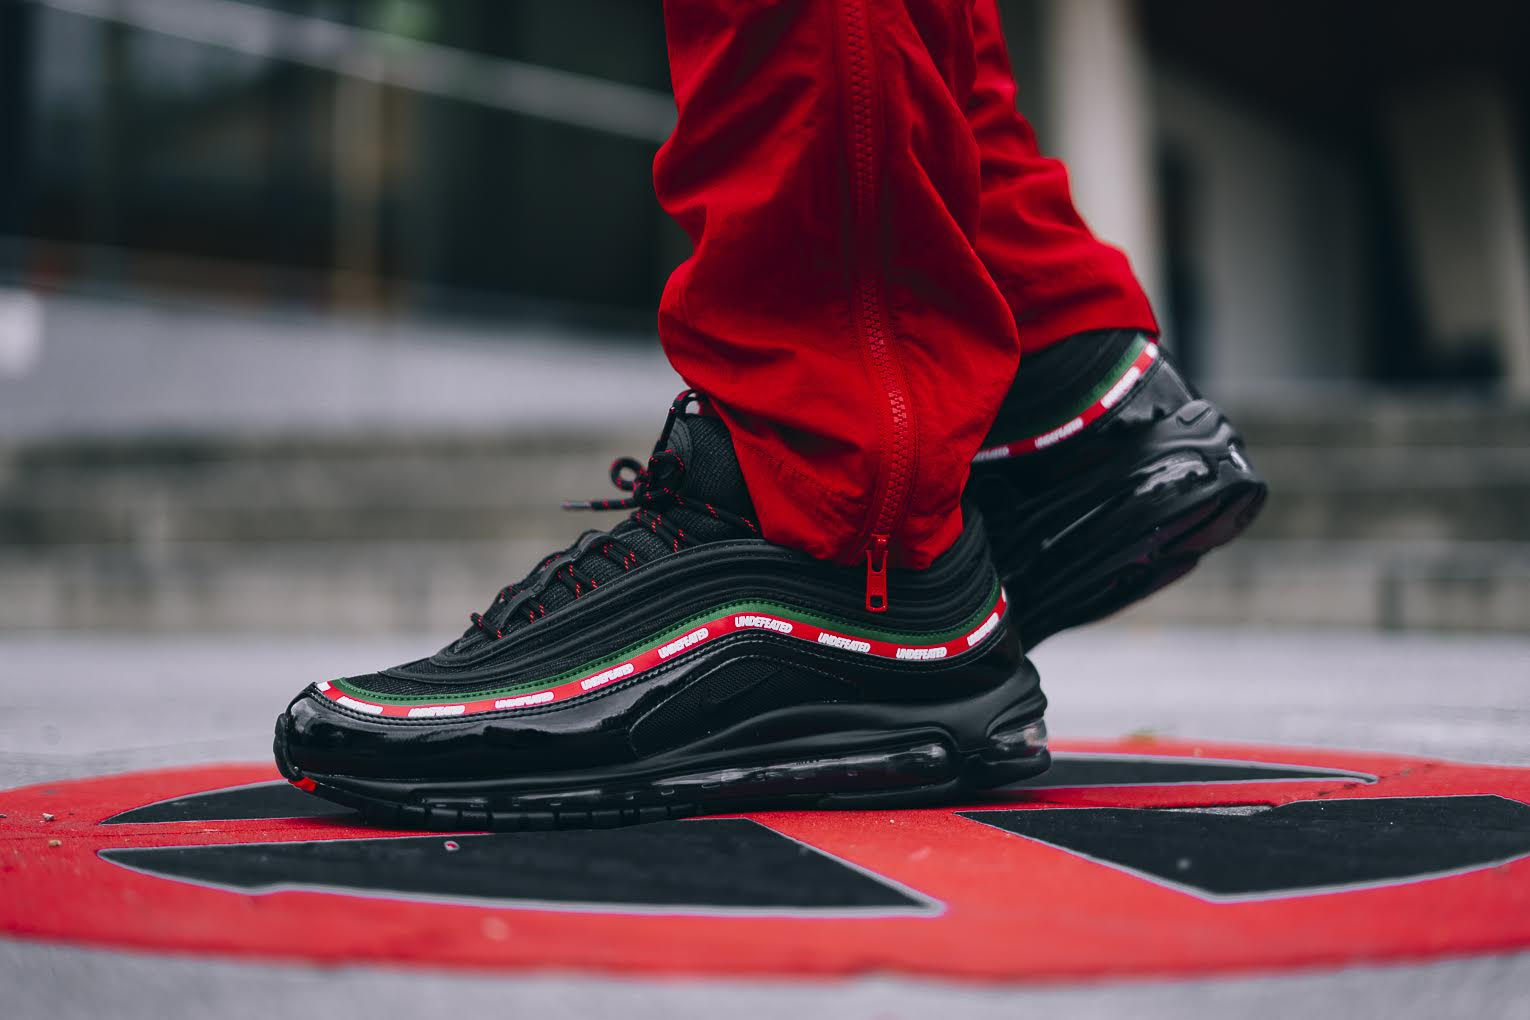 sports shoes f9f93 a1ee0 Seen here is the Nike Air Max 97 x Undefeated collaboration that features a  black, gorge green, white and speed red ...